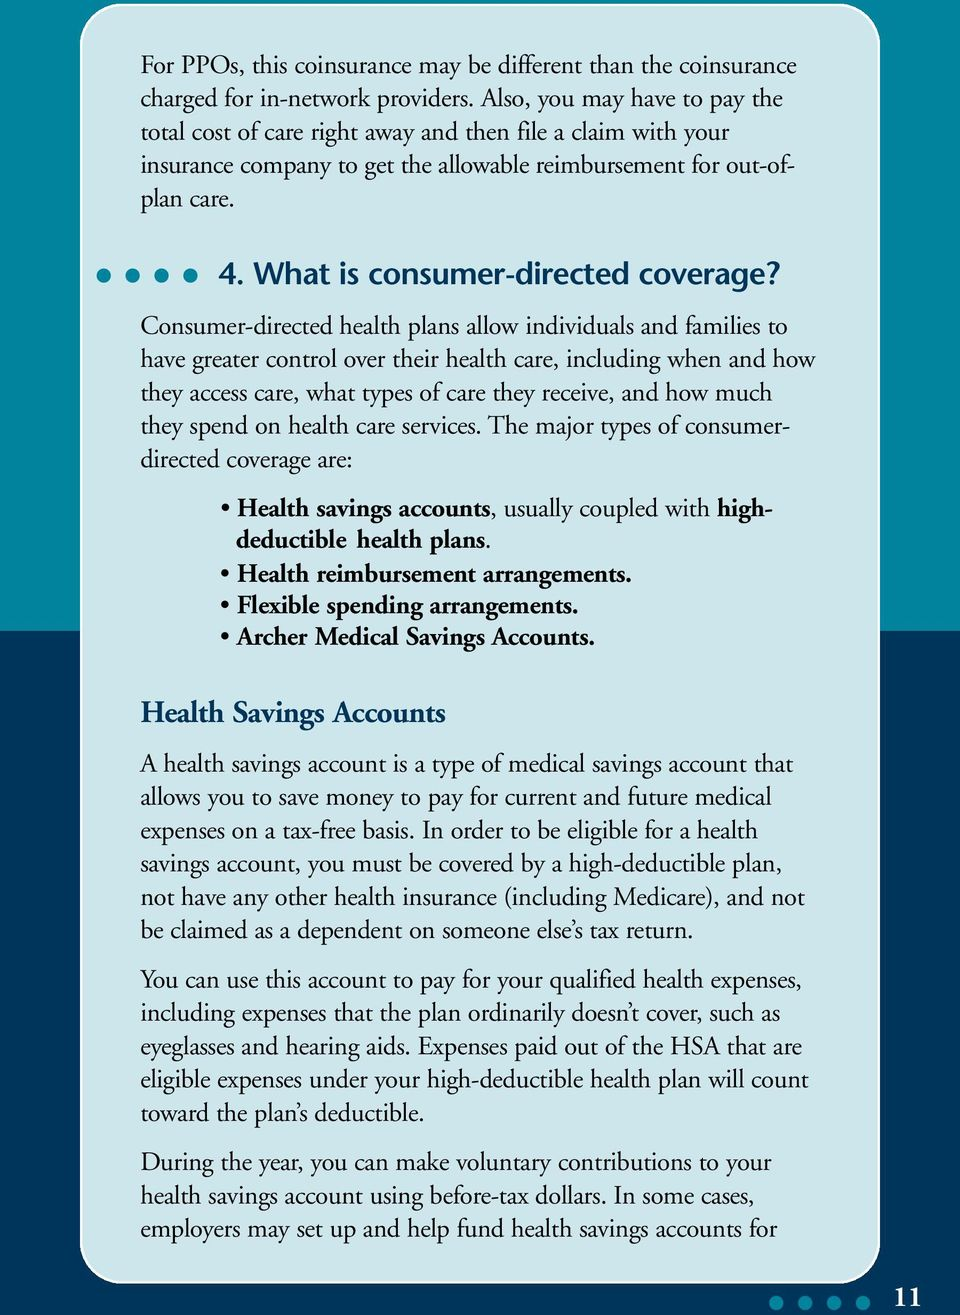 What is consumer-directed coverage?